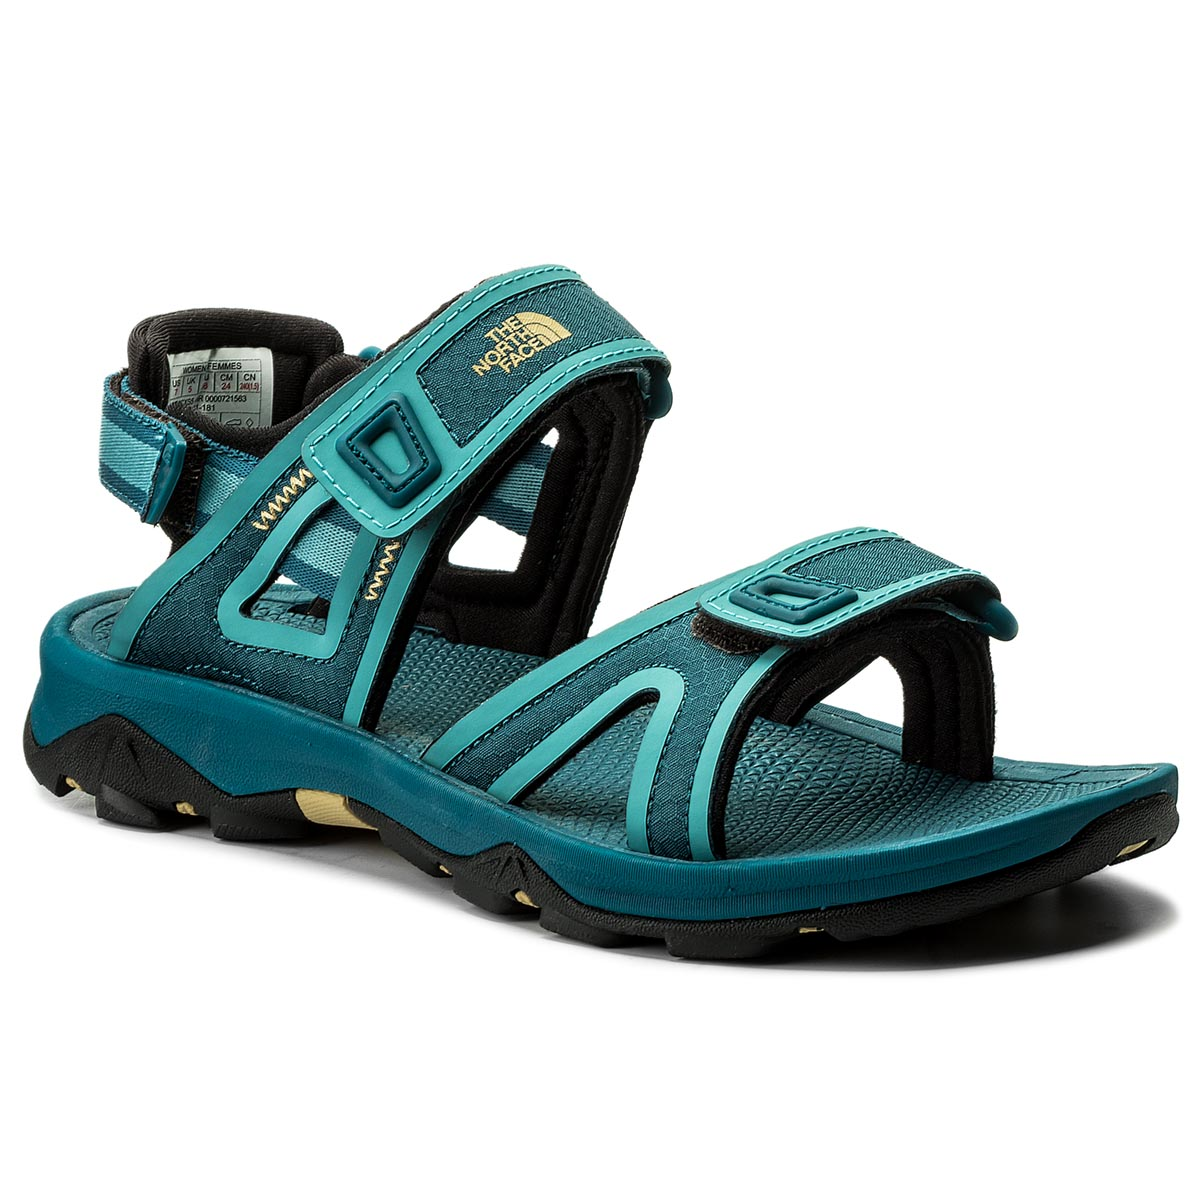 Sandale THE NORTH FACE - Hedgehog Sandal II T0CXS54NR Blue Coral/Bristol Blue